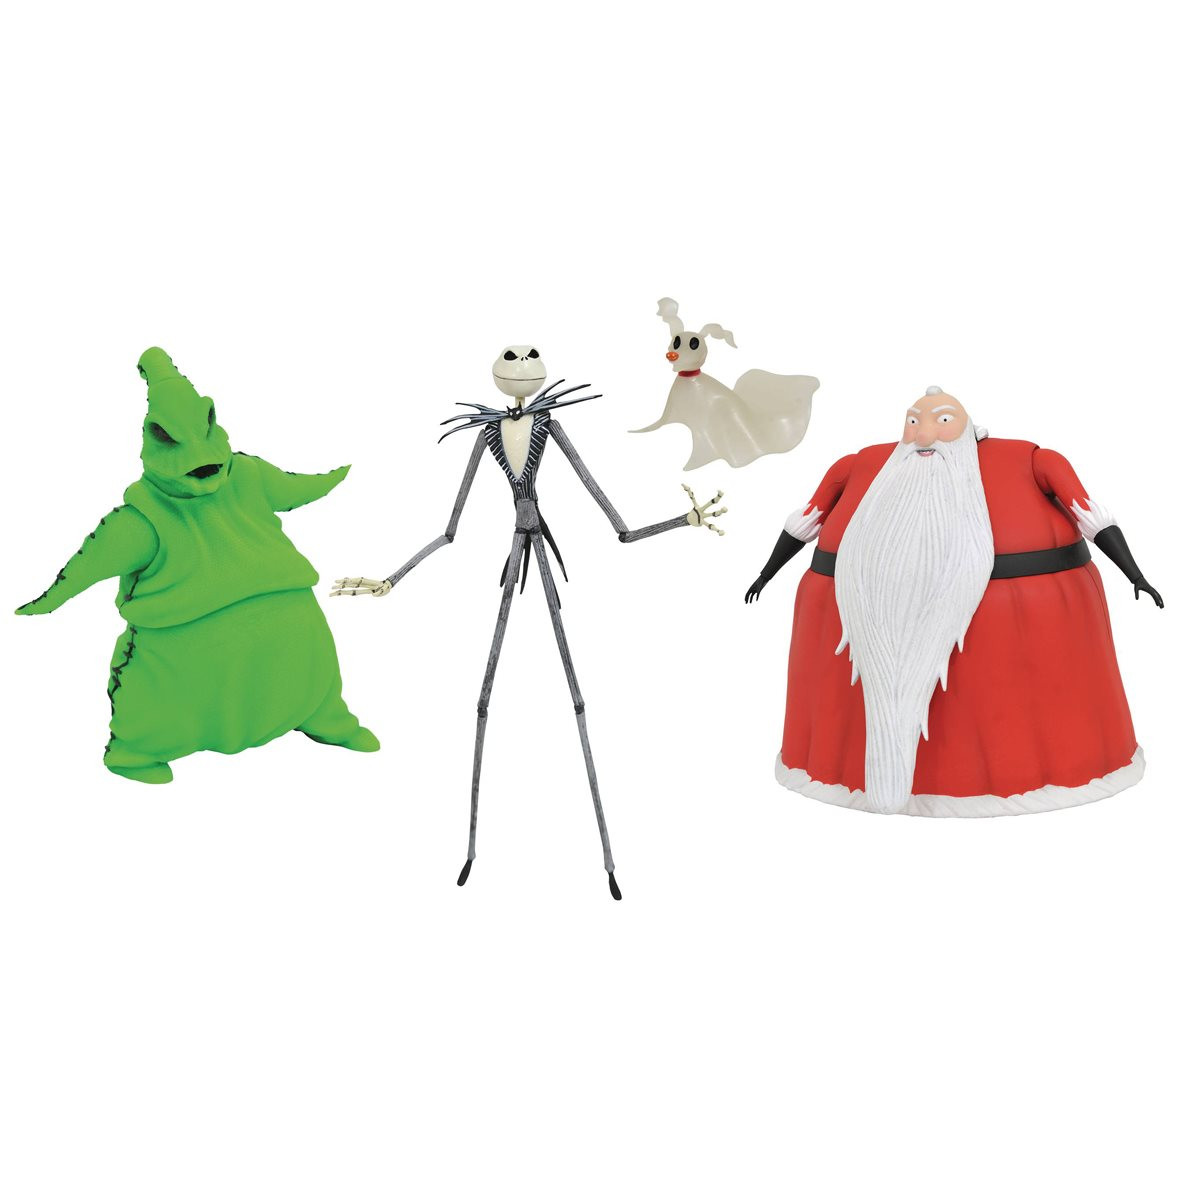 Christmas In San Diego 2020 Nightmare Before Christmas Lighted Action Figure Box Set   San